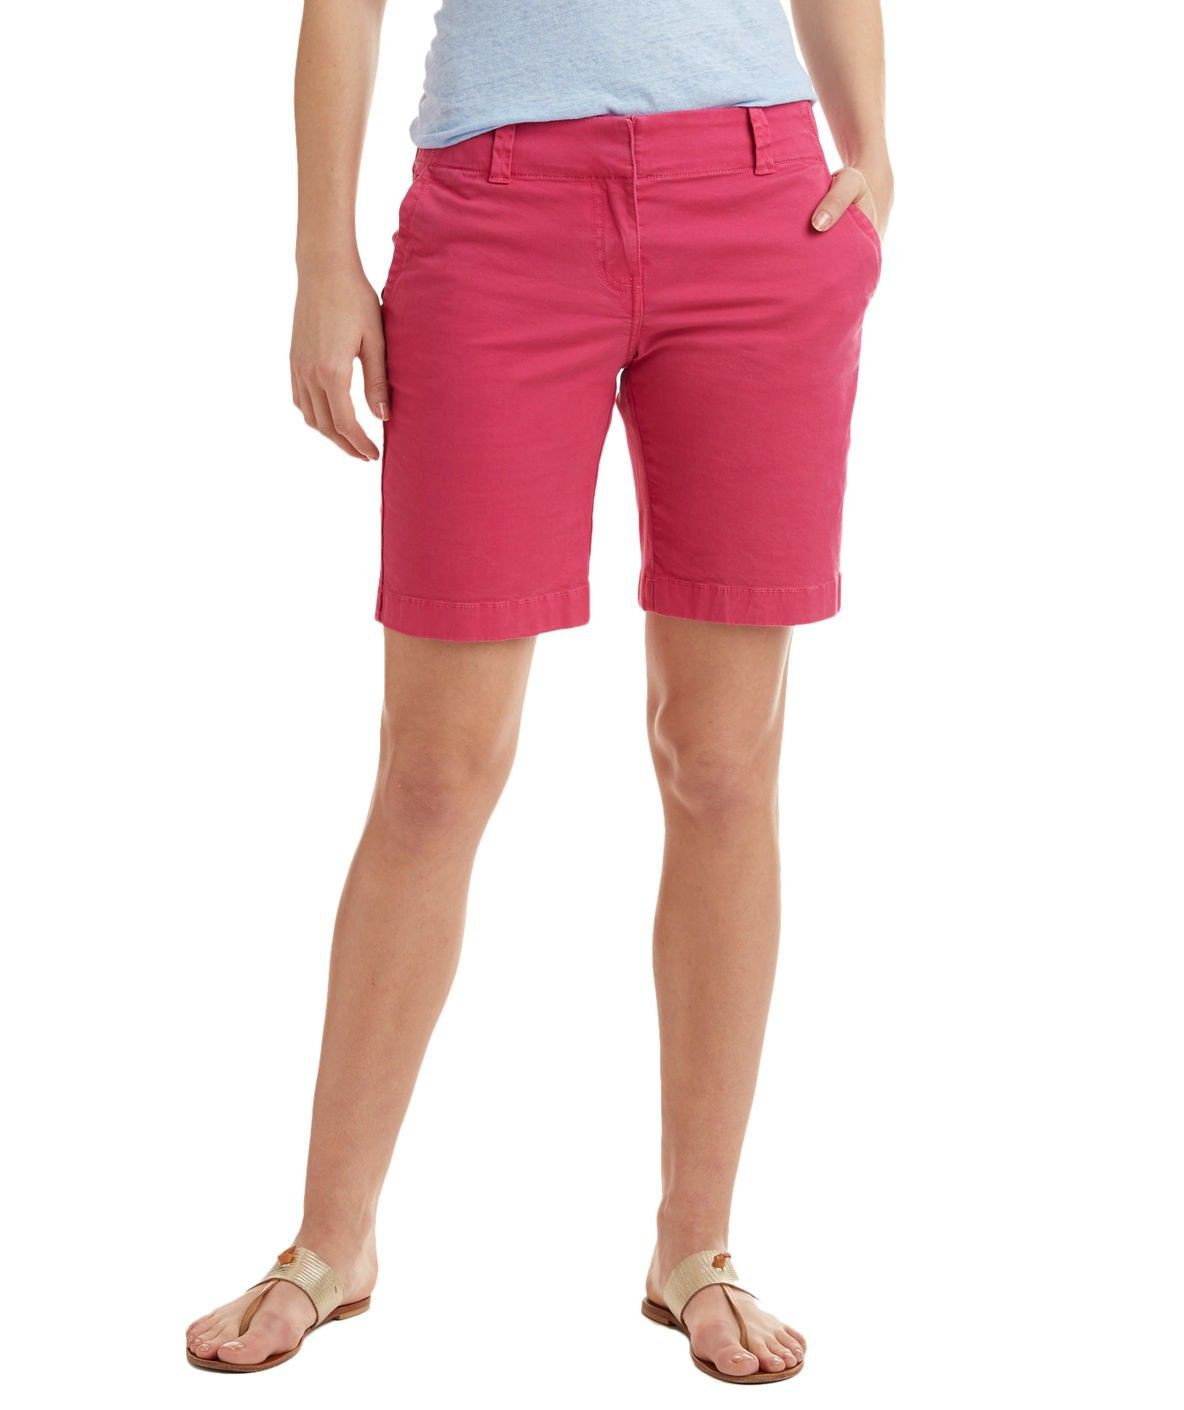 Magenta and pink cute outfit ideas with bermuda shorts, active shorts, board short